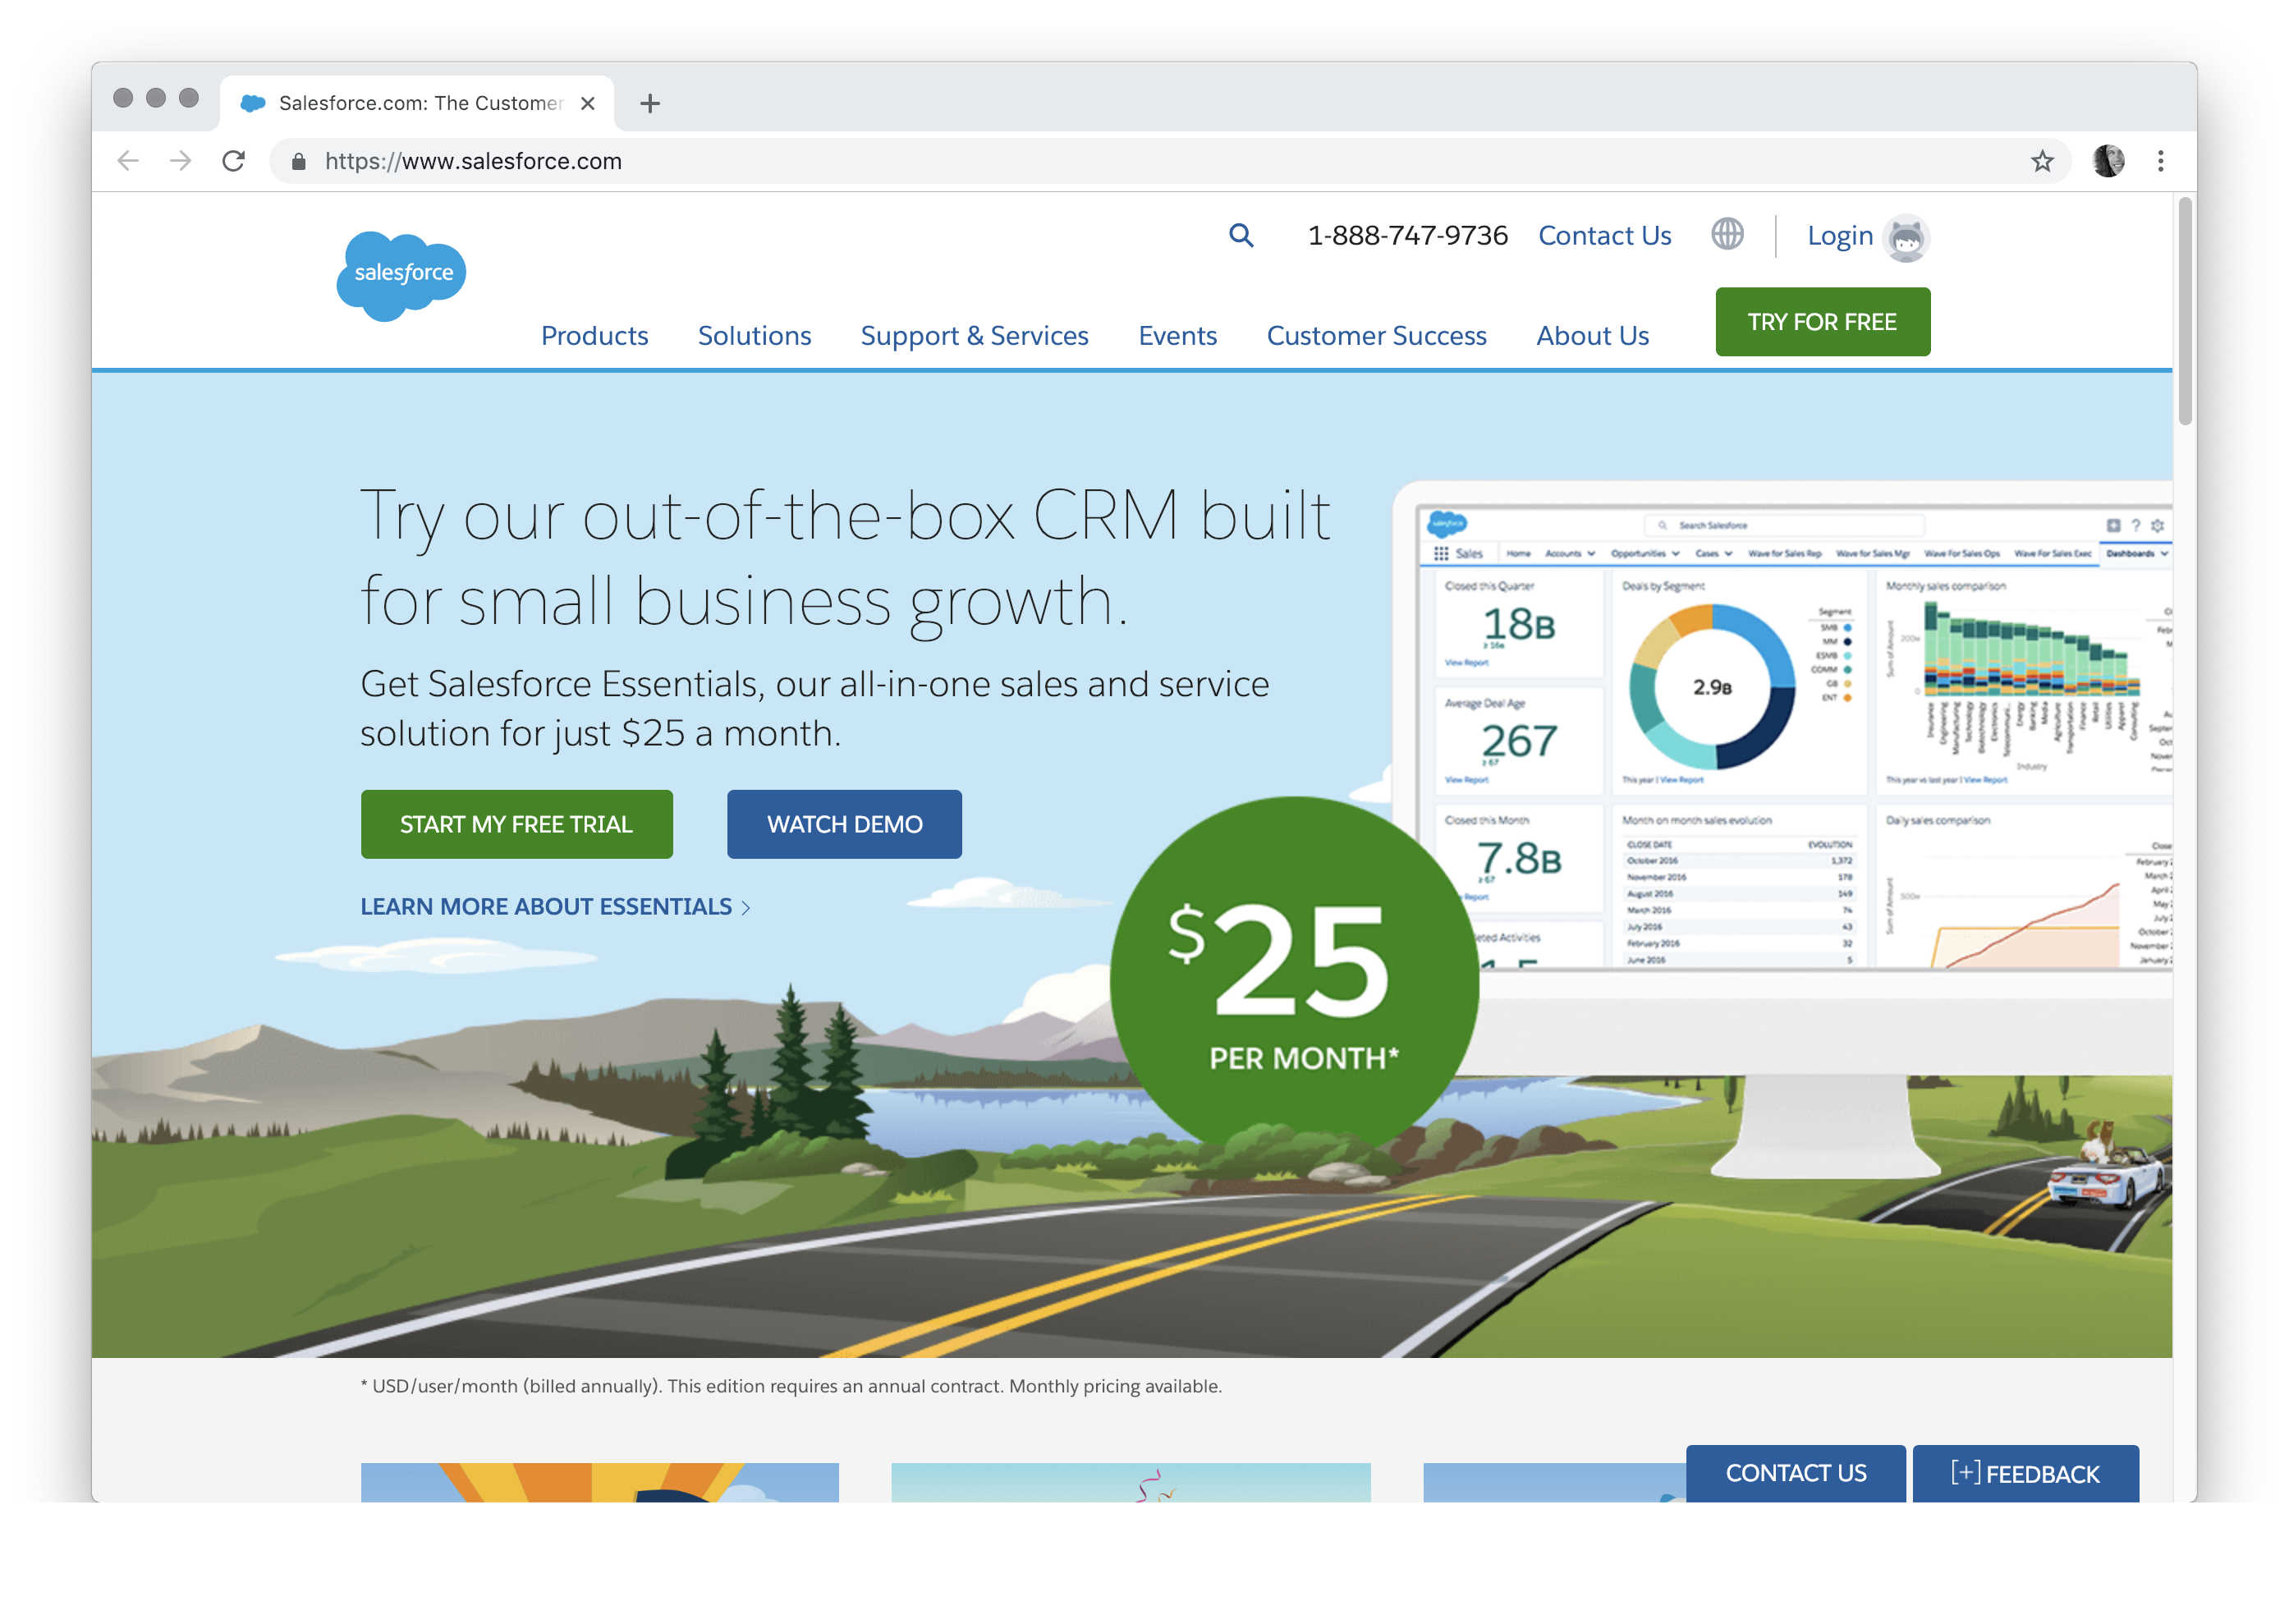 Try our out-of-the-box CRM built for small business growth. Get Salesforce Essentials, our all-in-one sales and service solution